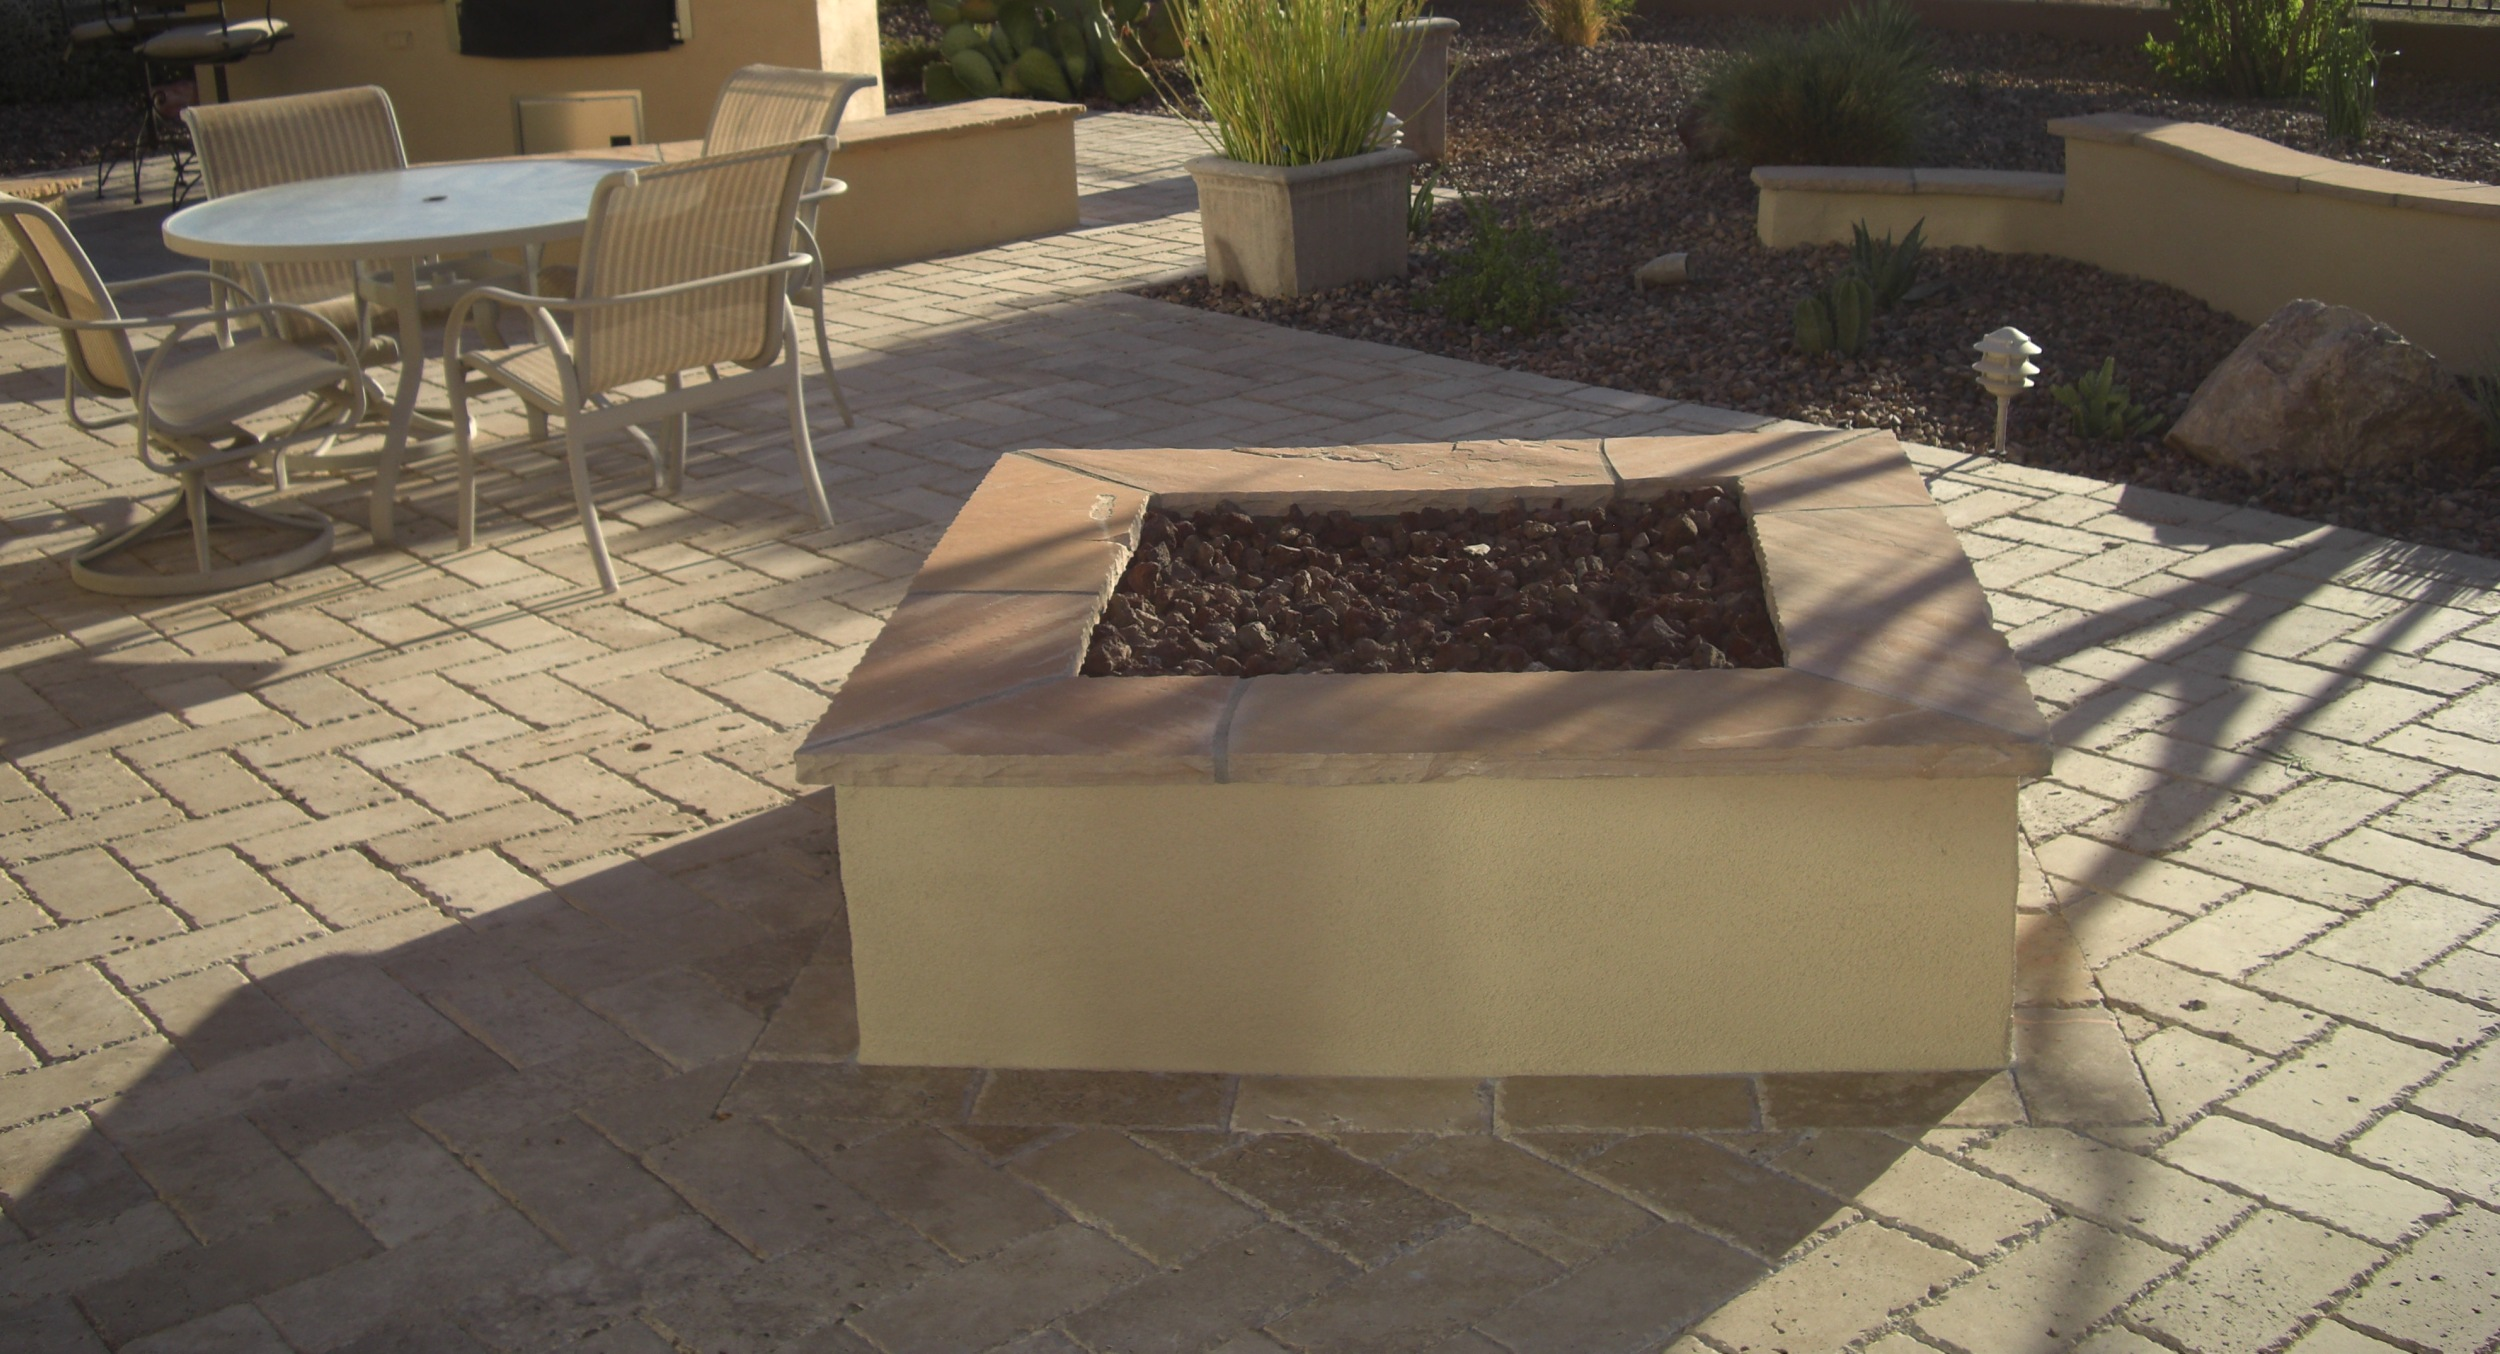 We set this custom Phoenix fire pit on an angle in the travertine pavers for greater interest. The result makes it outstanding surrounded by curved shapes in the overall landscape design.